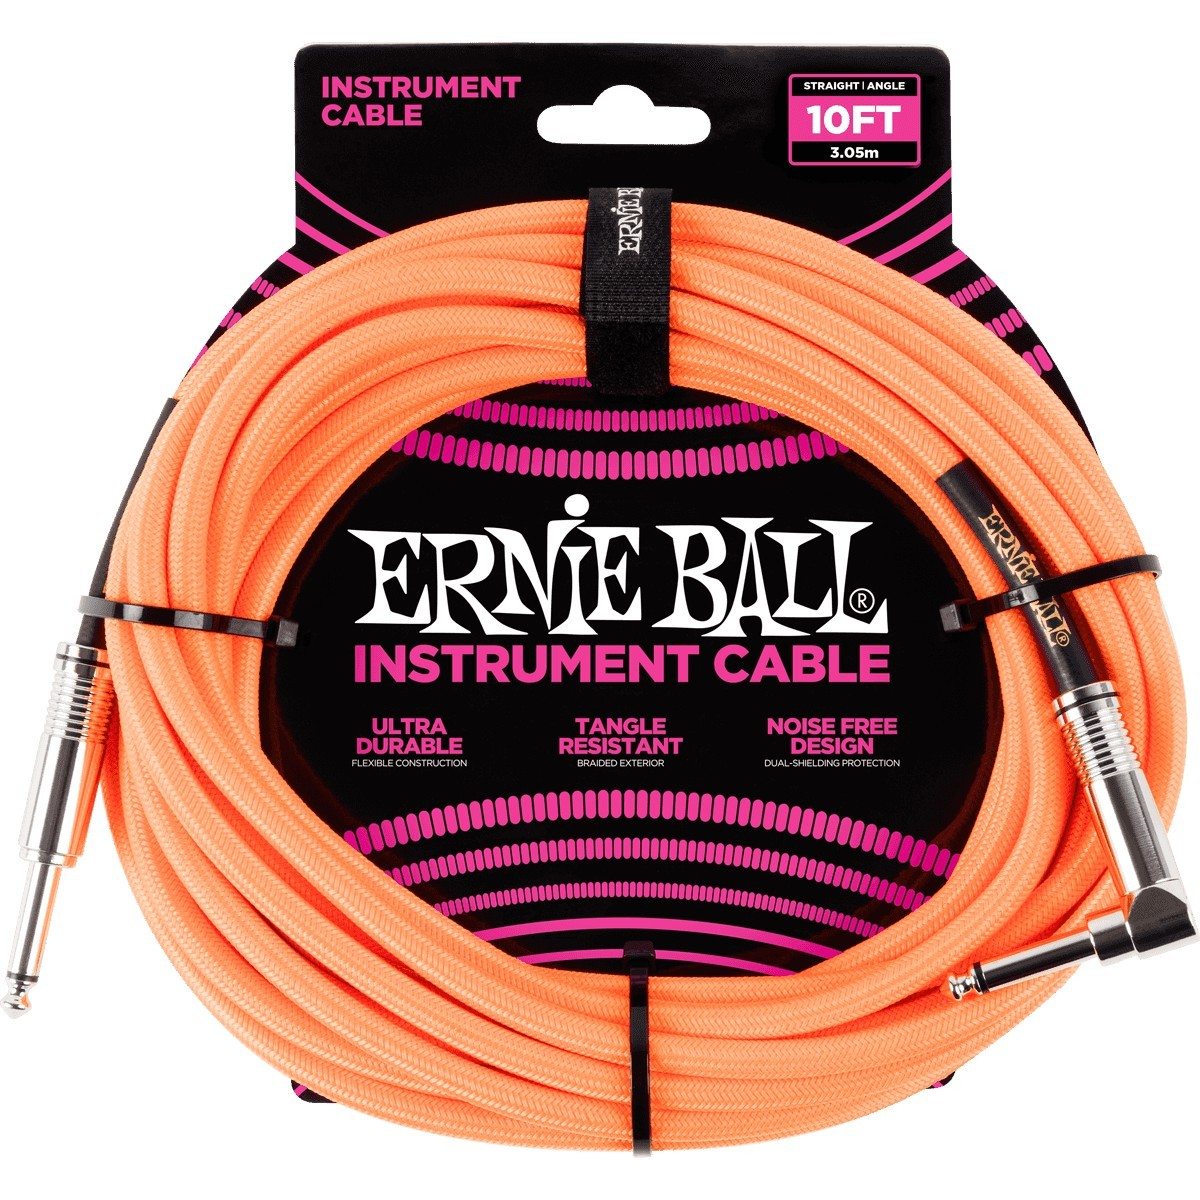 ERNIE BALL Cable Instrument Gaine Tressee Droit Coude 3 05 M Neon Orange